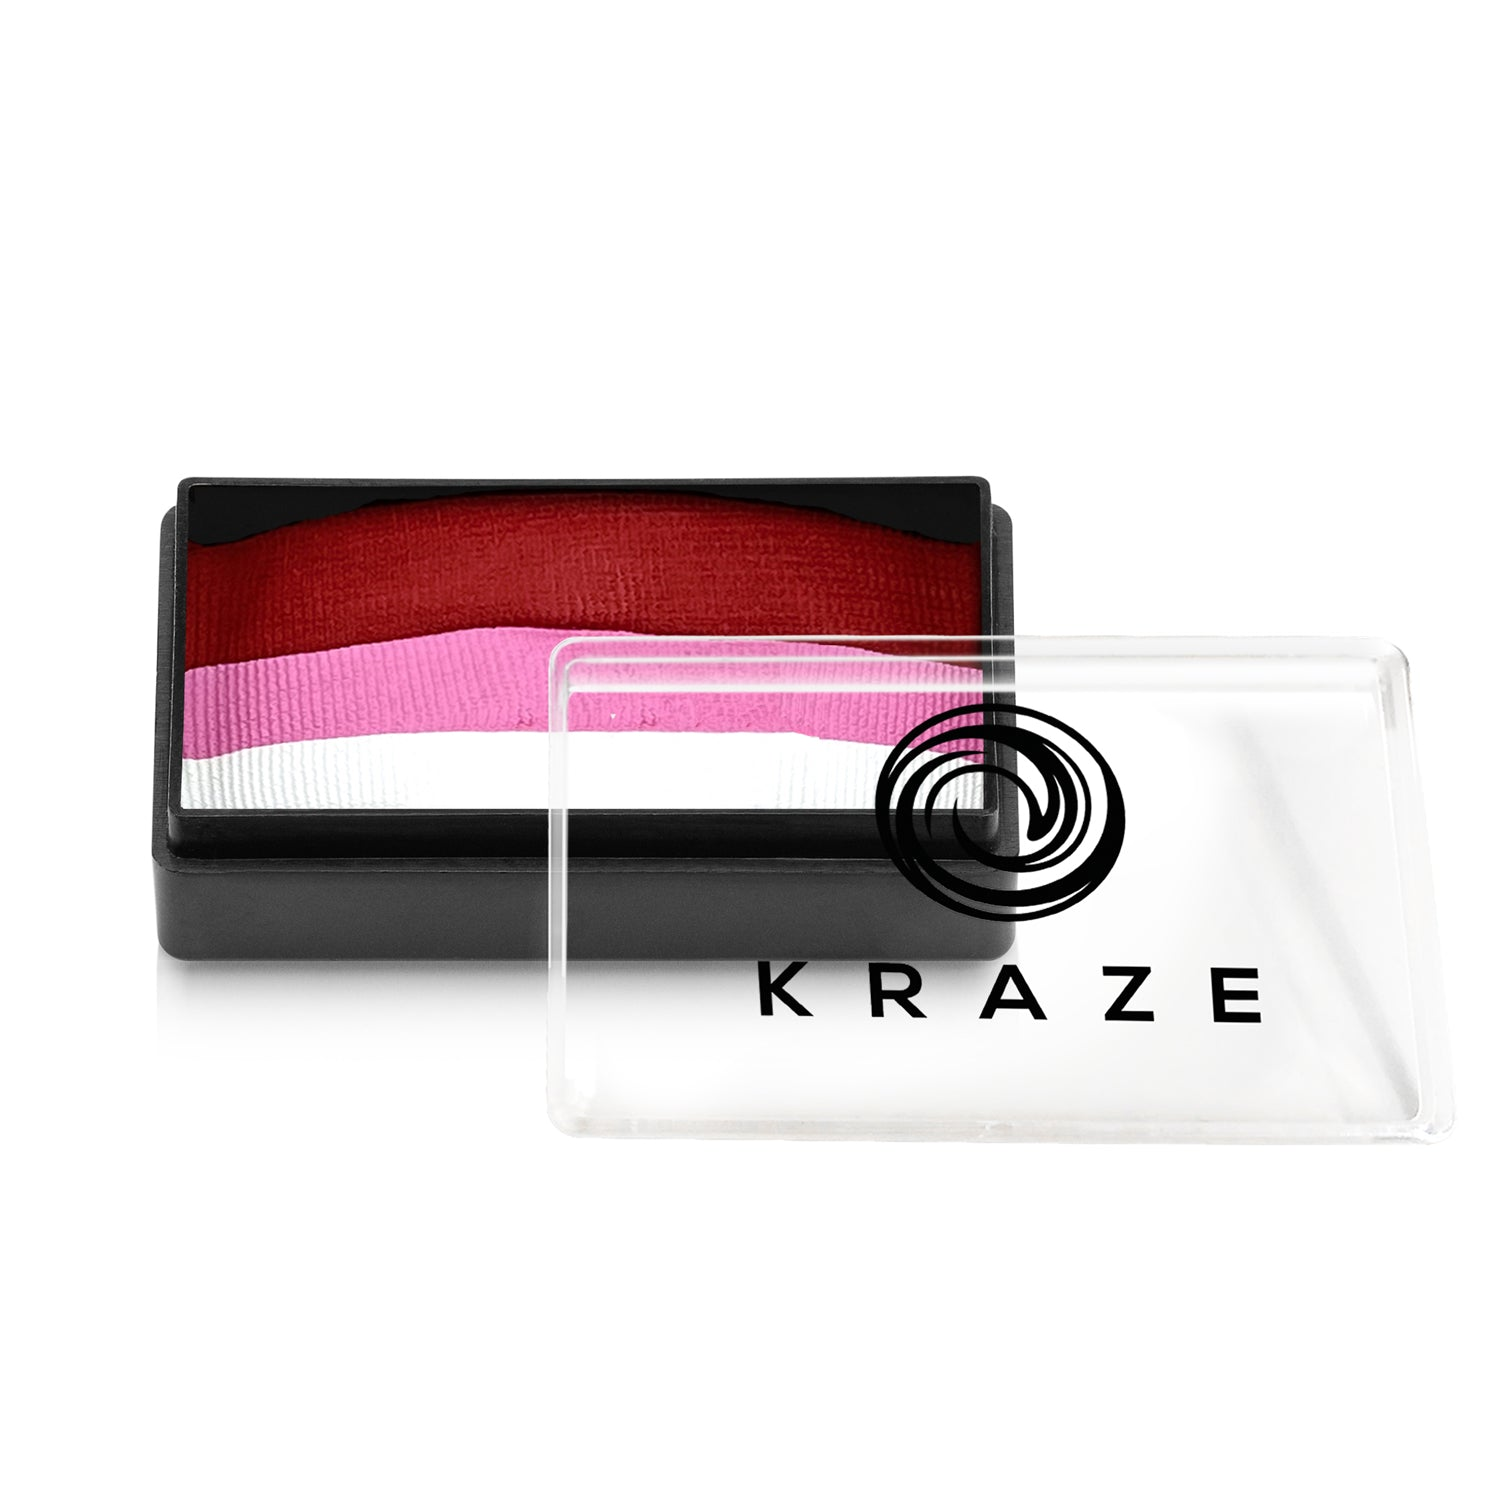 Kraze FX Domed 1- Stroke Split Cake - 25 gm - Pink Rose